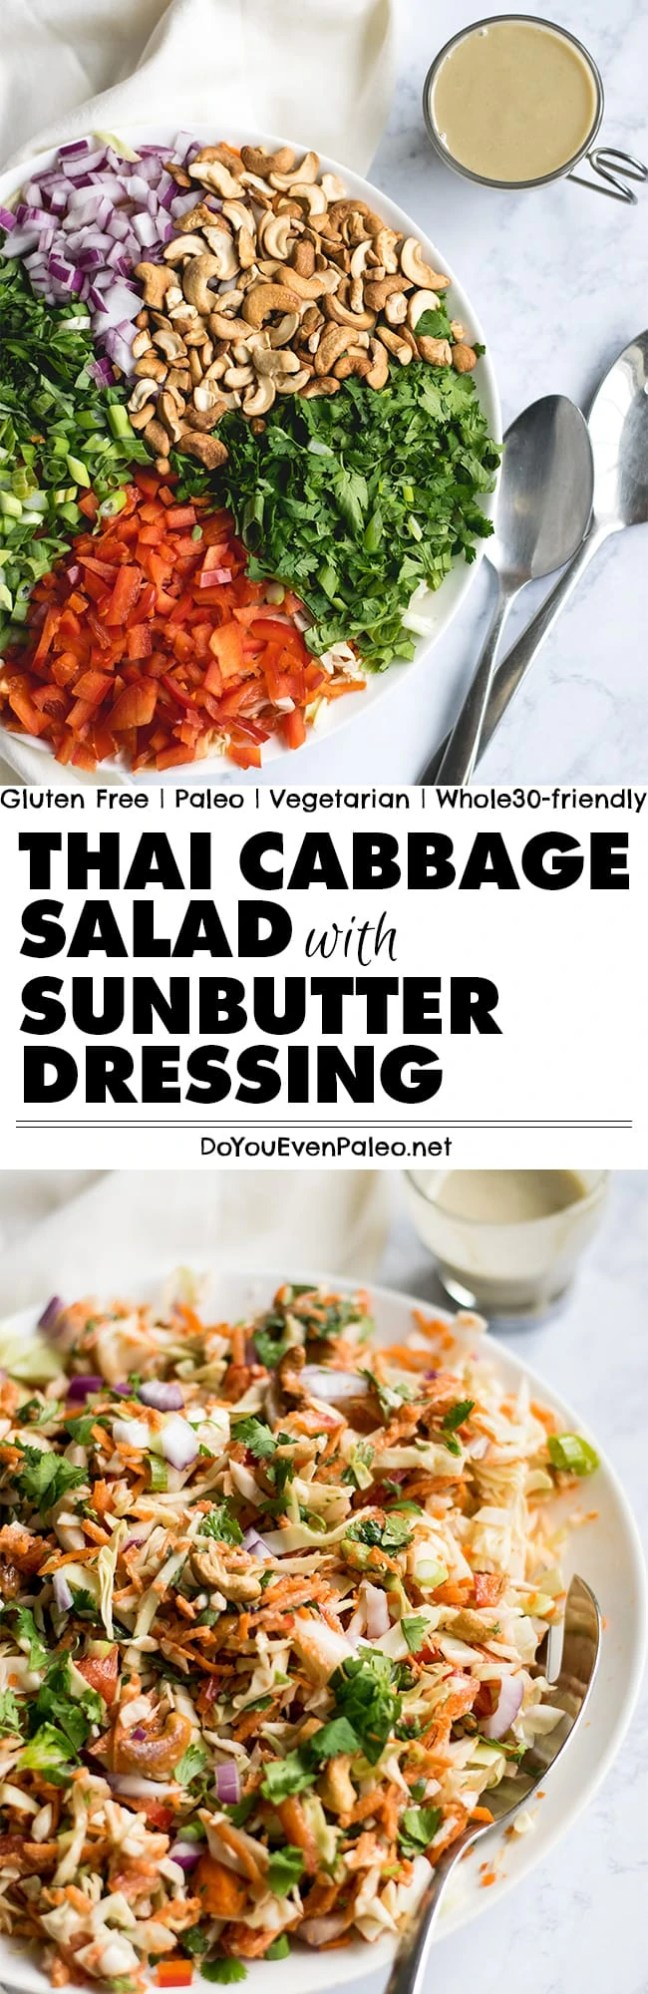 Crunchy, fresh, veggie-licious Thai Cabbage Salad with Sunbutter Dressing - paleo, gluten free, vegetarian, and Whole30-friendly! | DoYouEvenPaleo.net